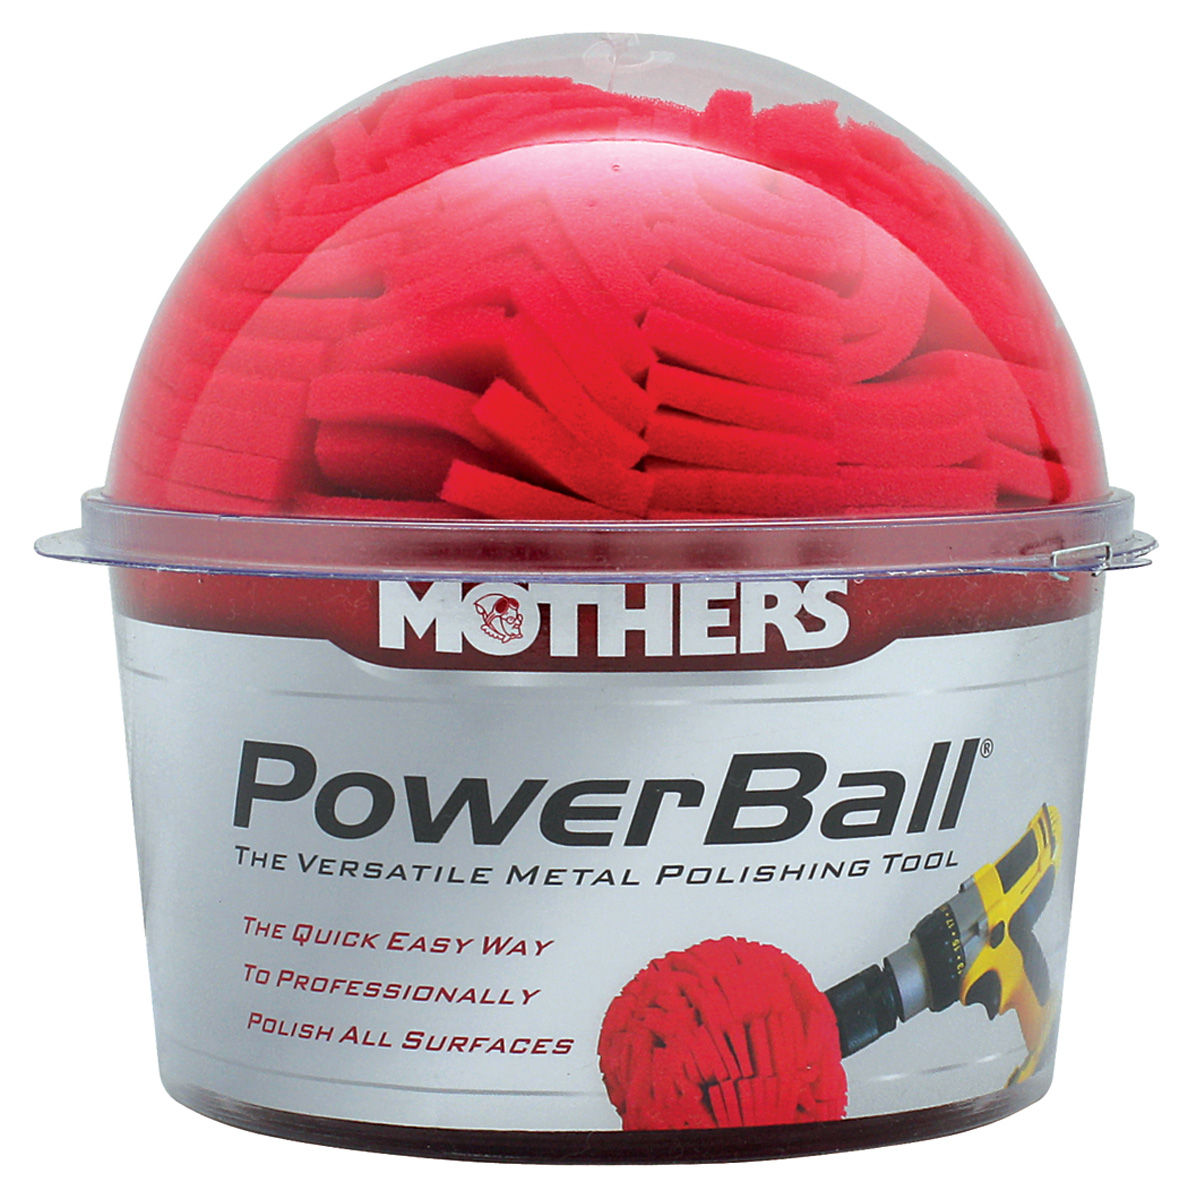 Powerball Foam Ball, Mothers